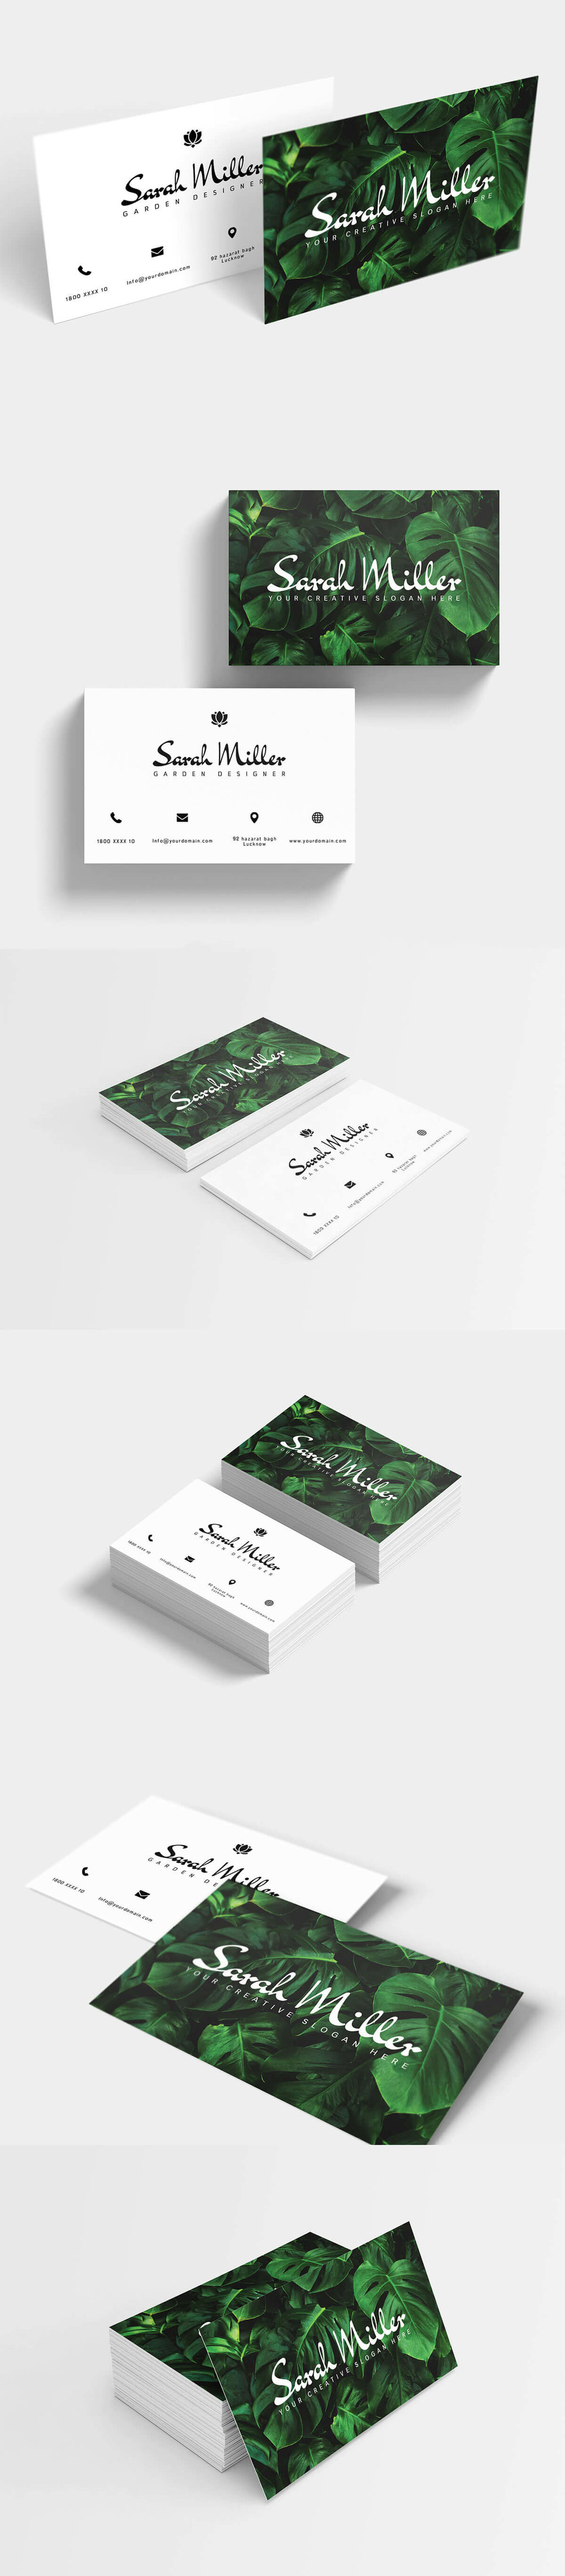 Free BotanicalBusiness Card Templateis a beautiful and modern trend botanical business card. It contains 2 PSD files with built-in smart object feature in CMYK color mode at 300 DPI resolution.